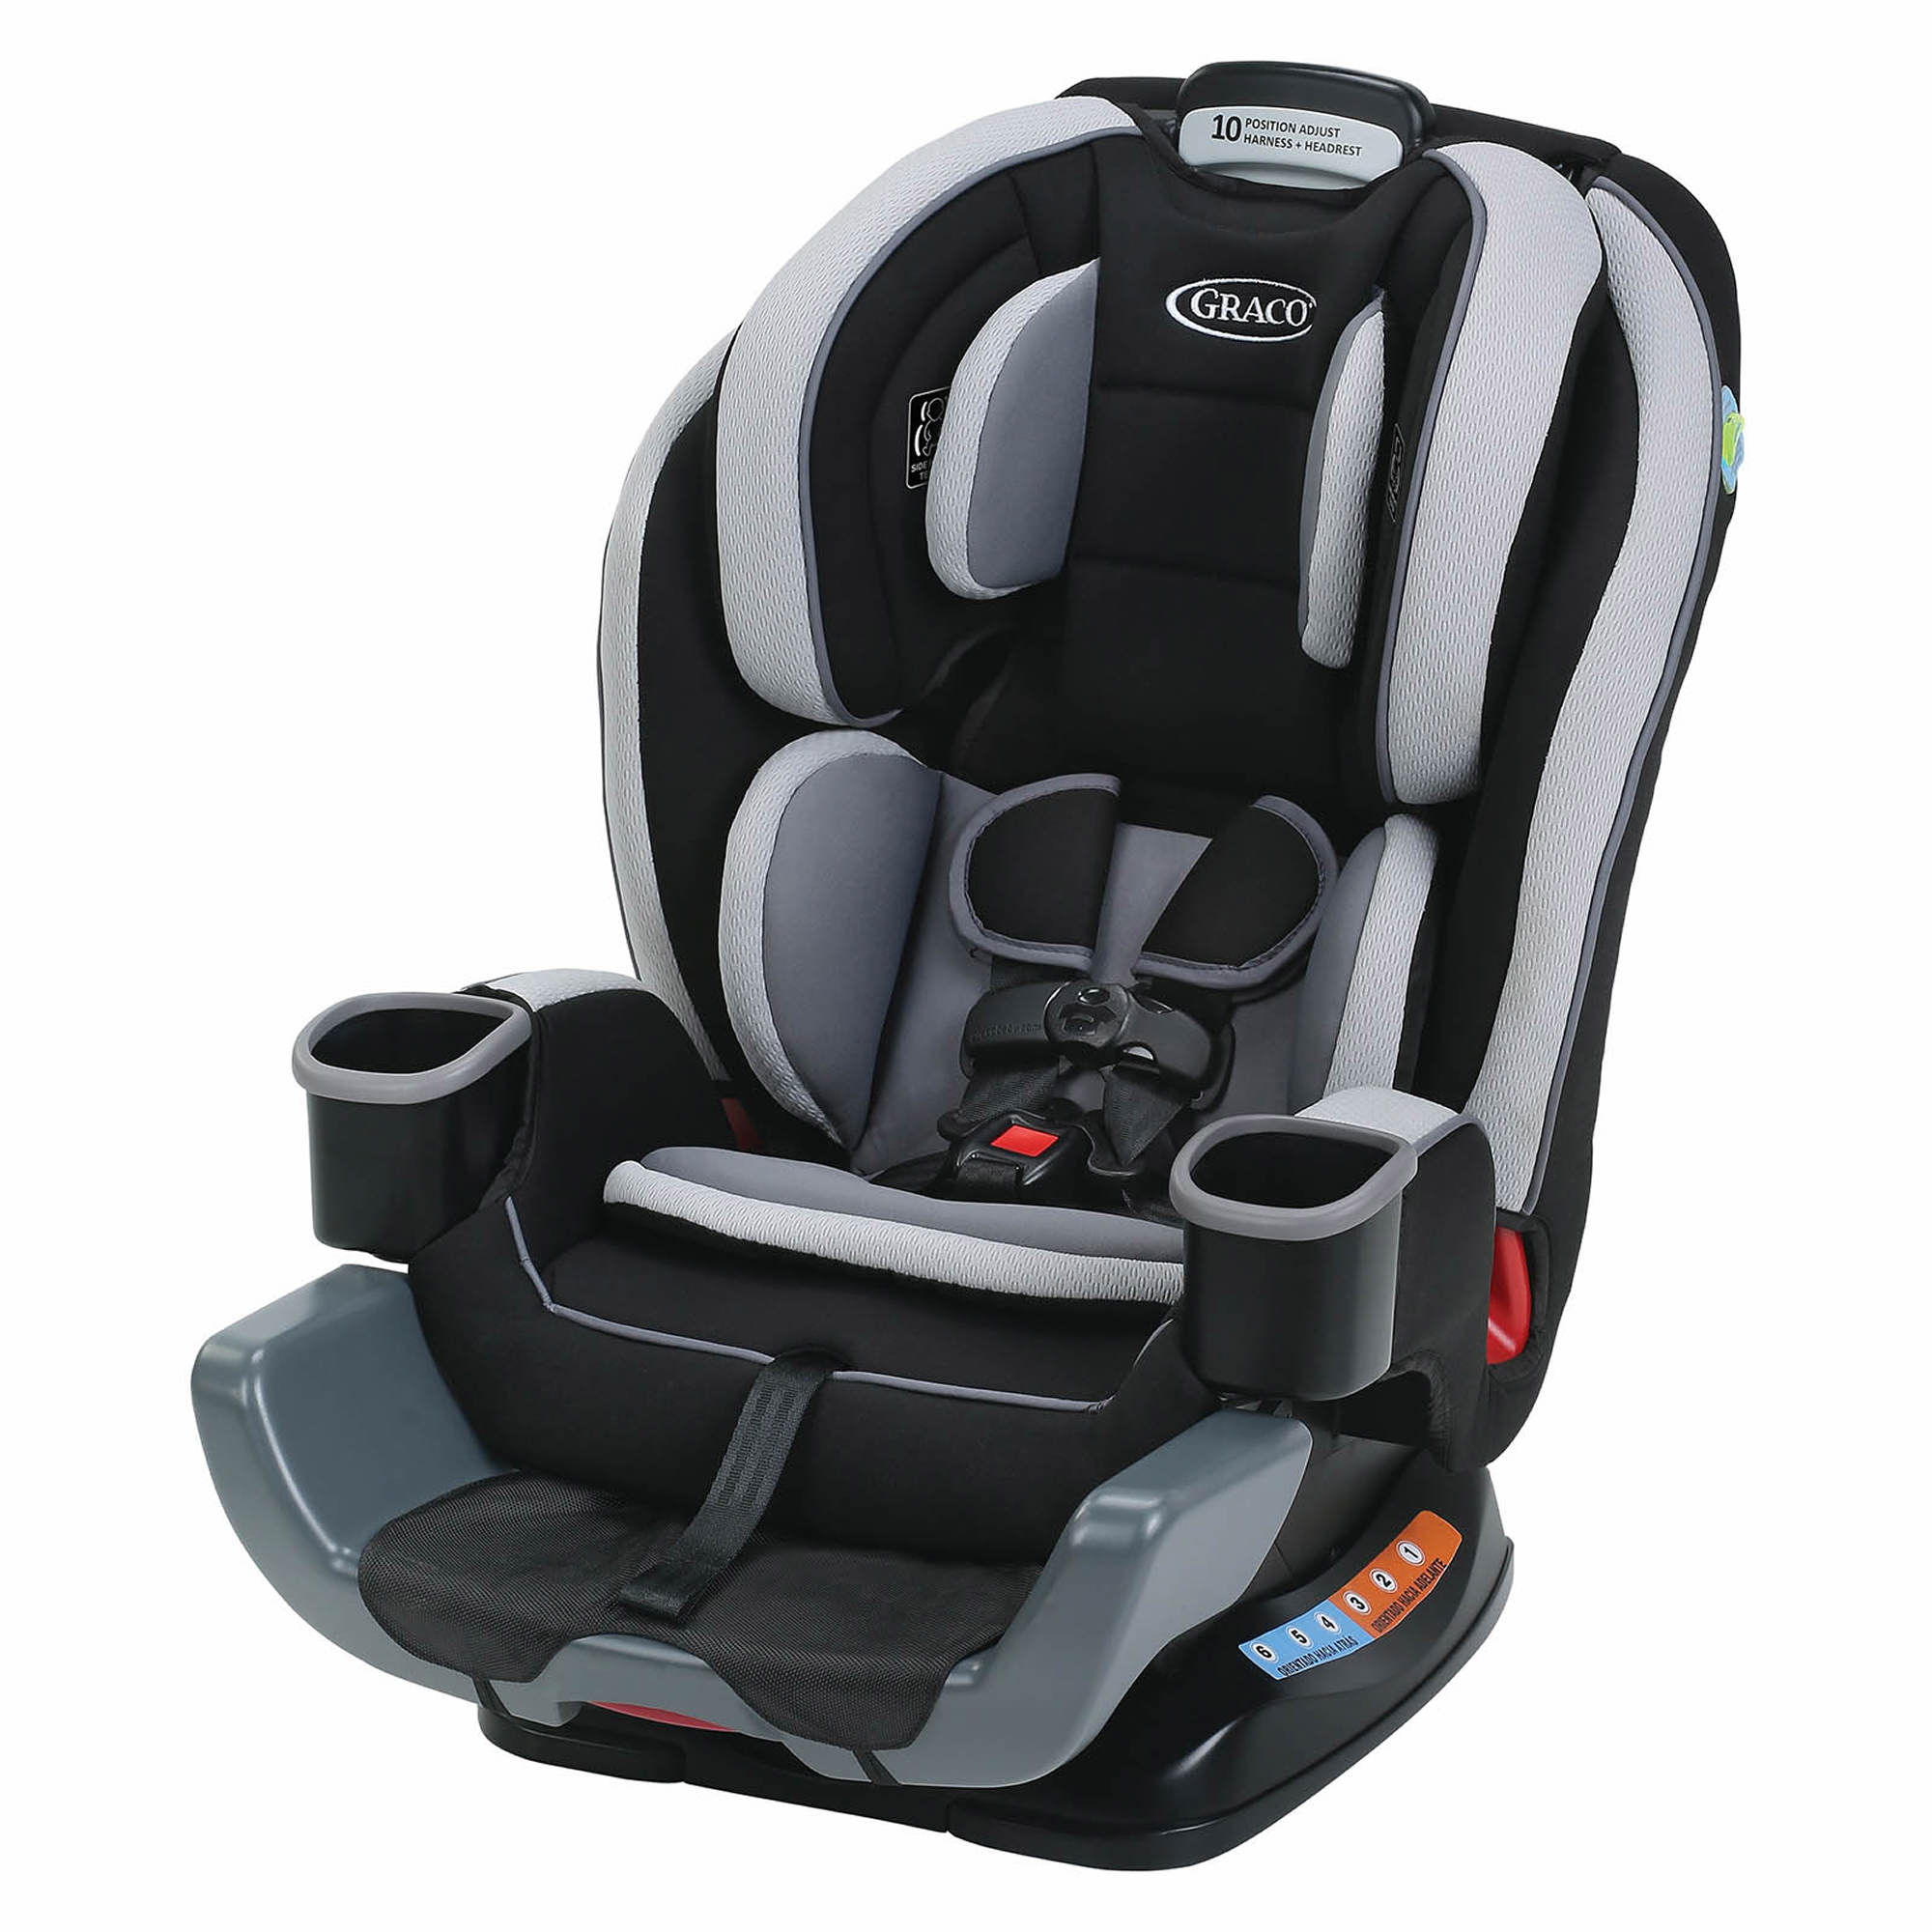 Graco Extend2Fit 3-in-1 Convertible Car Seat - BJs WholeSale Club